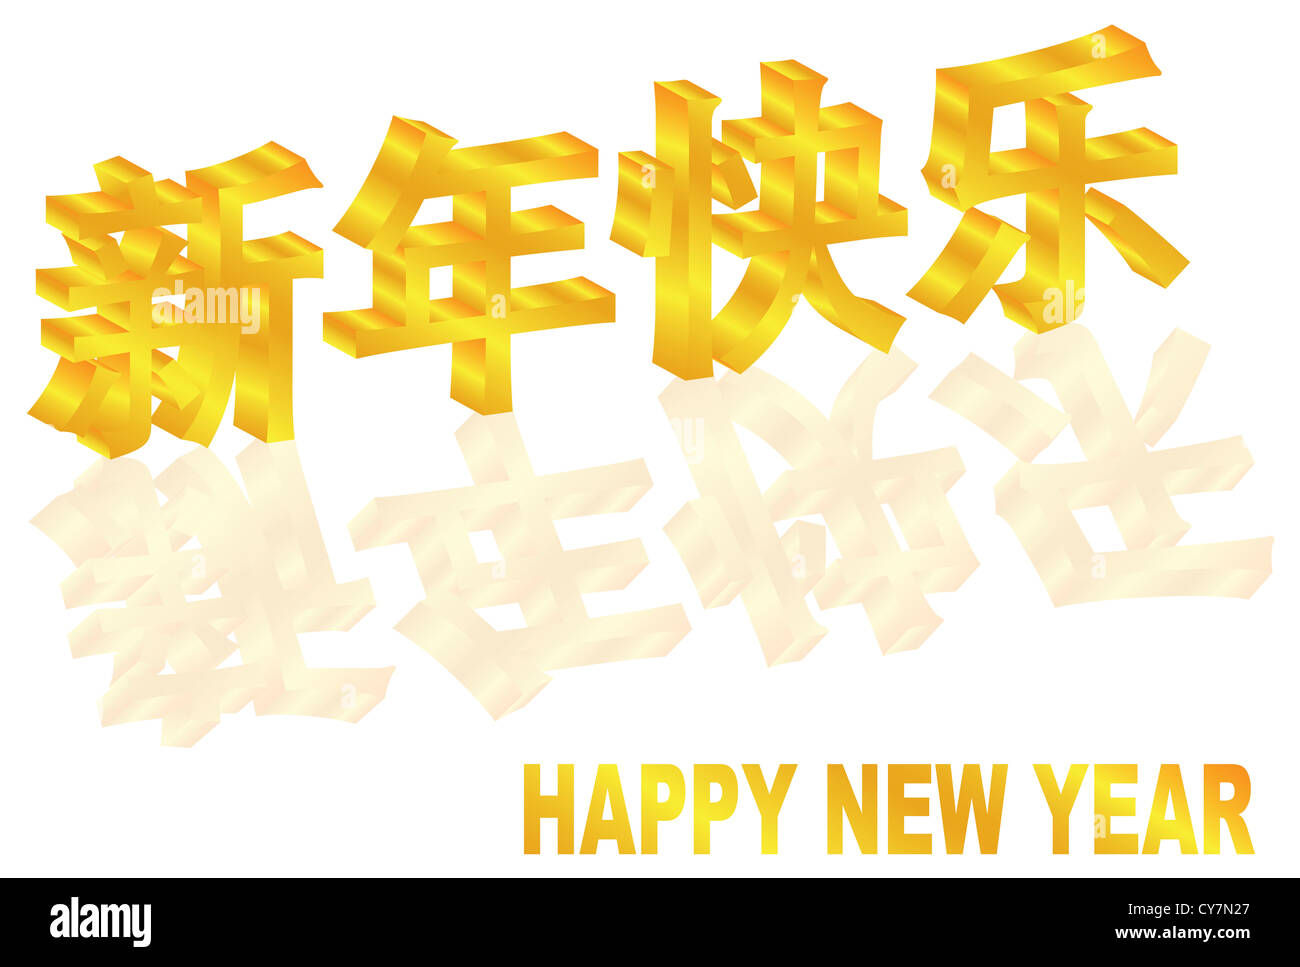 Happy New Year Wishes Stock Photos Happy New Year Wishes Stock